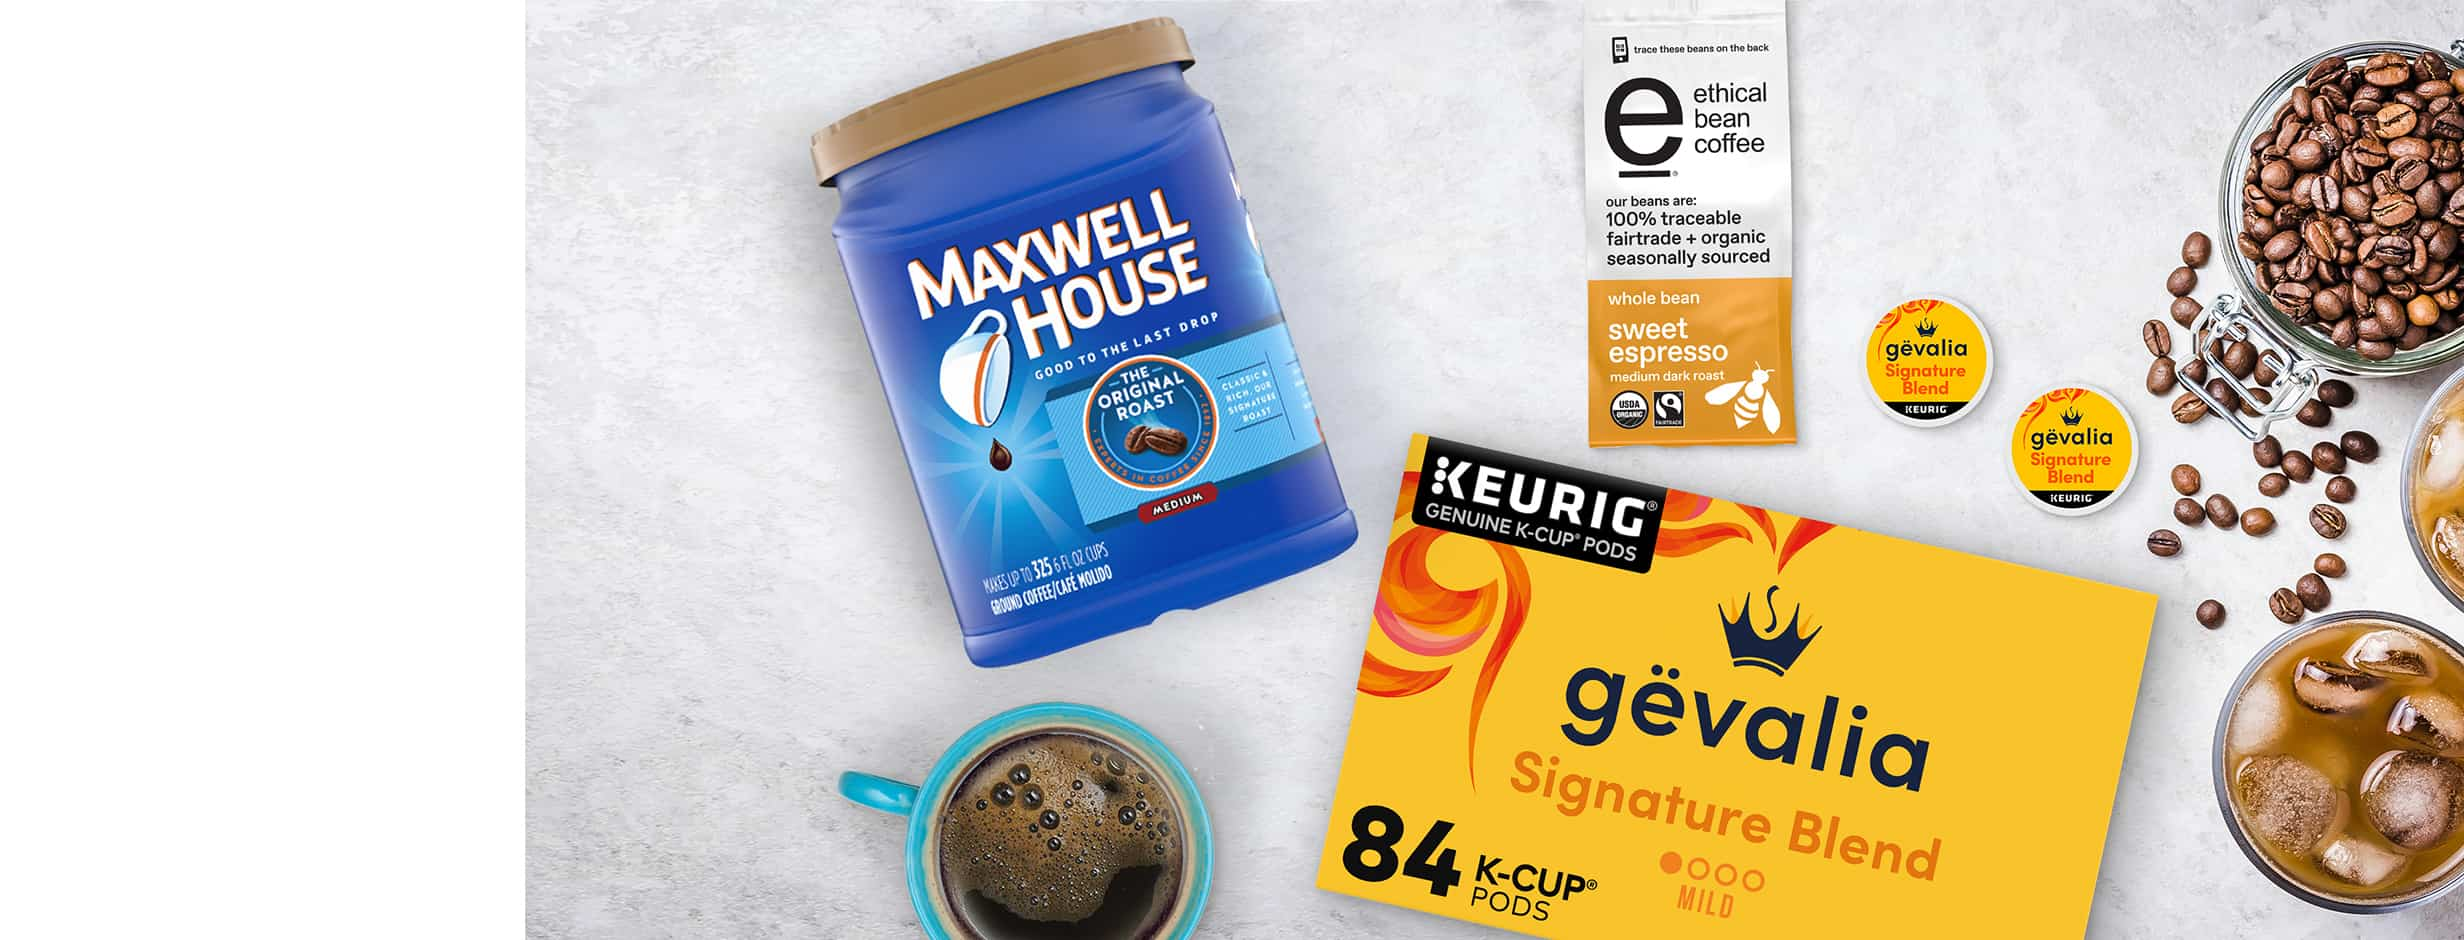 Blend it your way with Gevalia and Maxwell House.